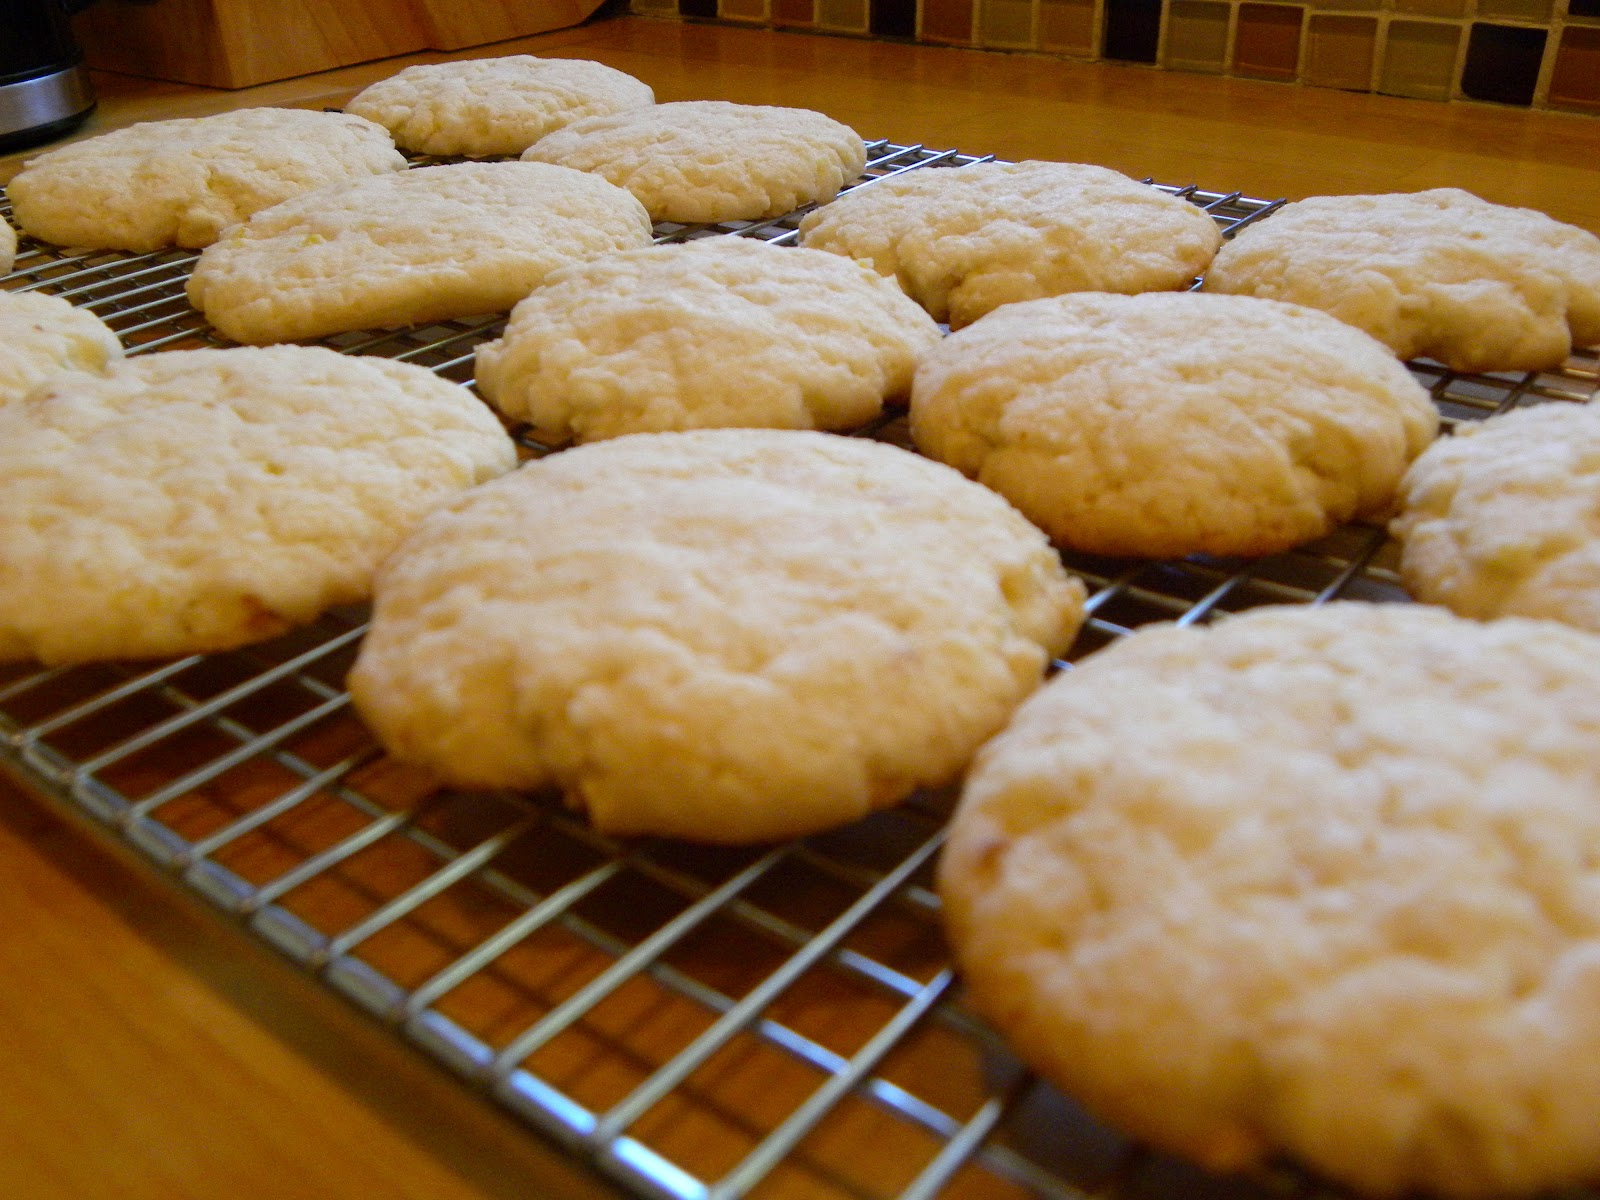 Nothing found for 2012 07 Glazed Lemon Cookies